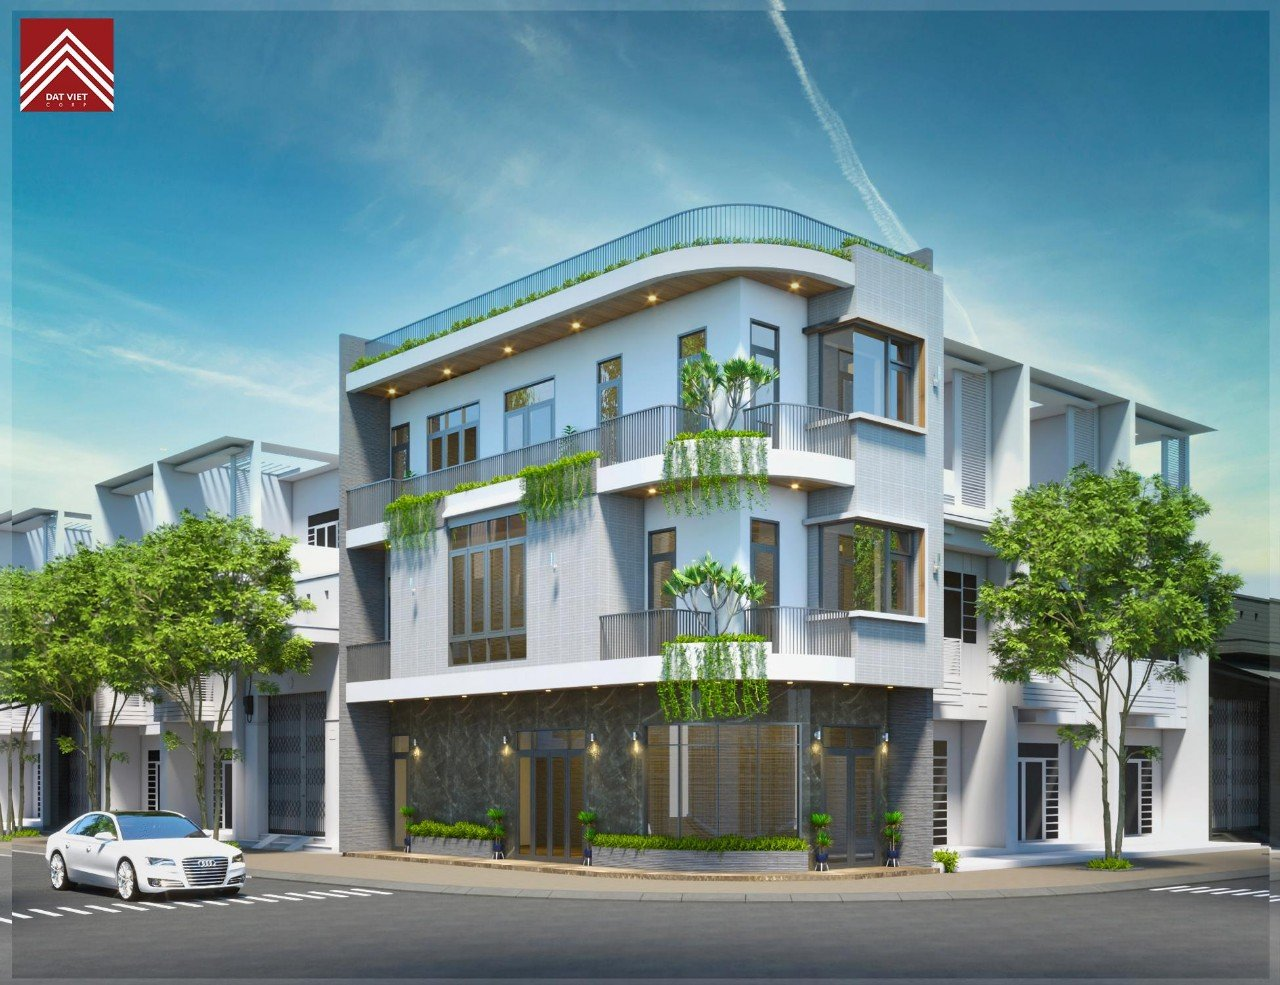 Office Rental / Commercial Space Near T20 Beach